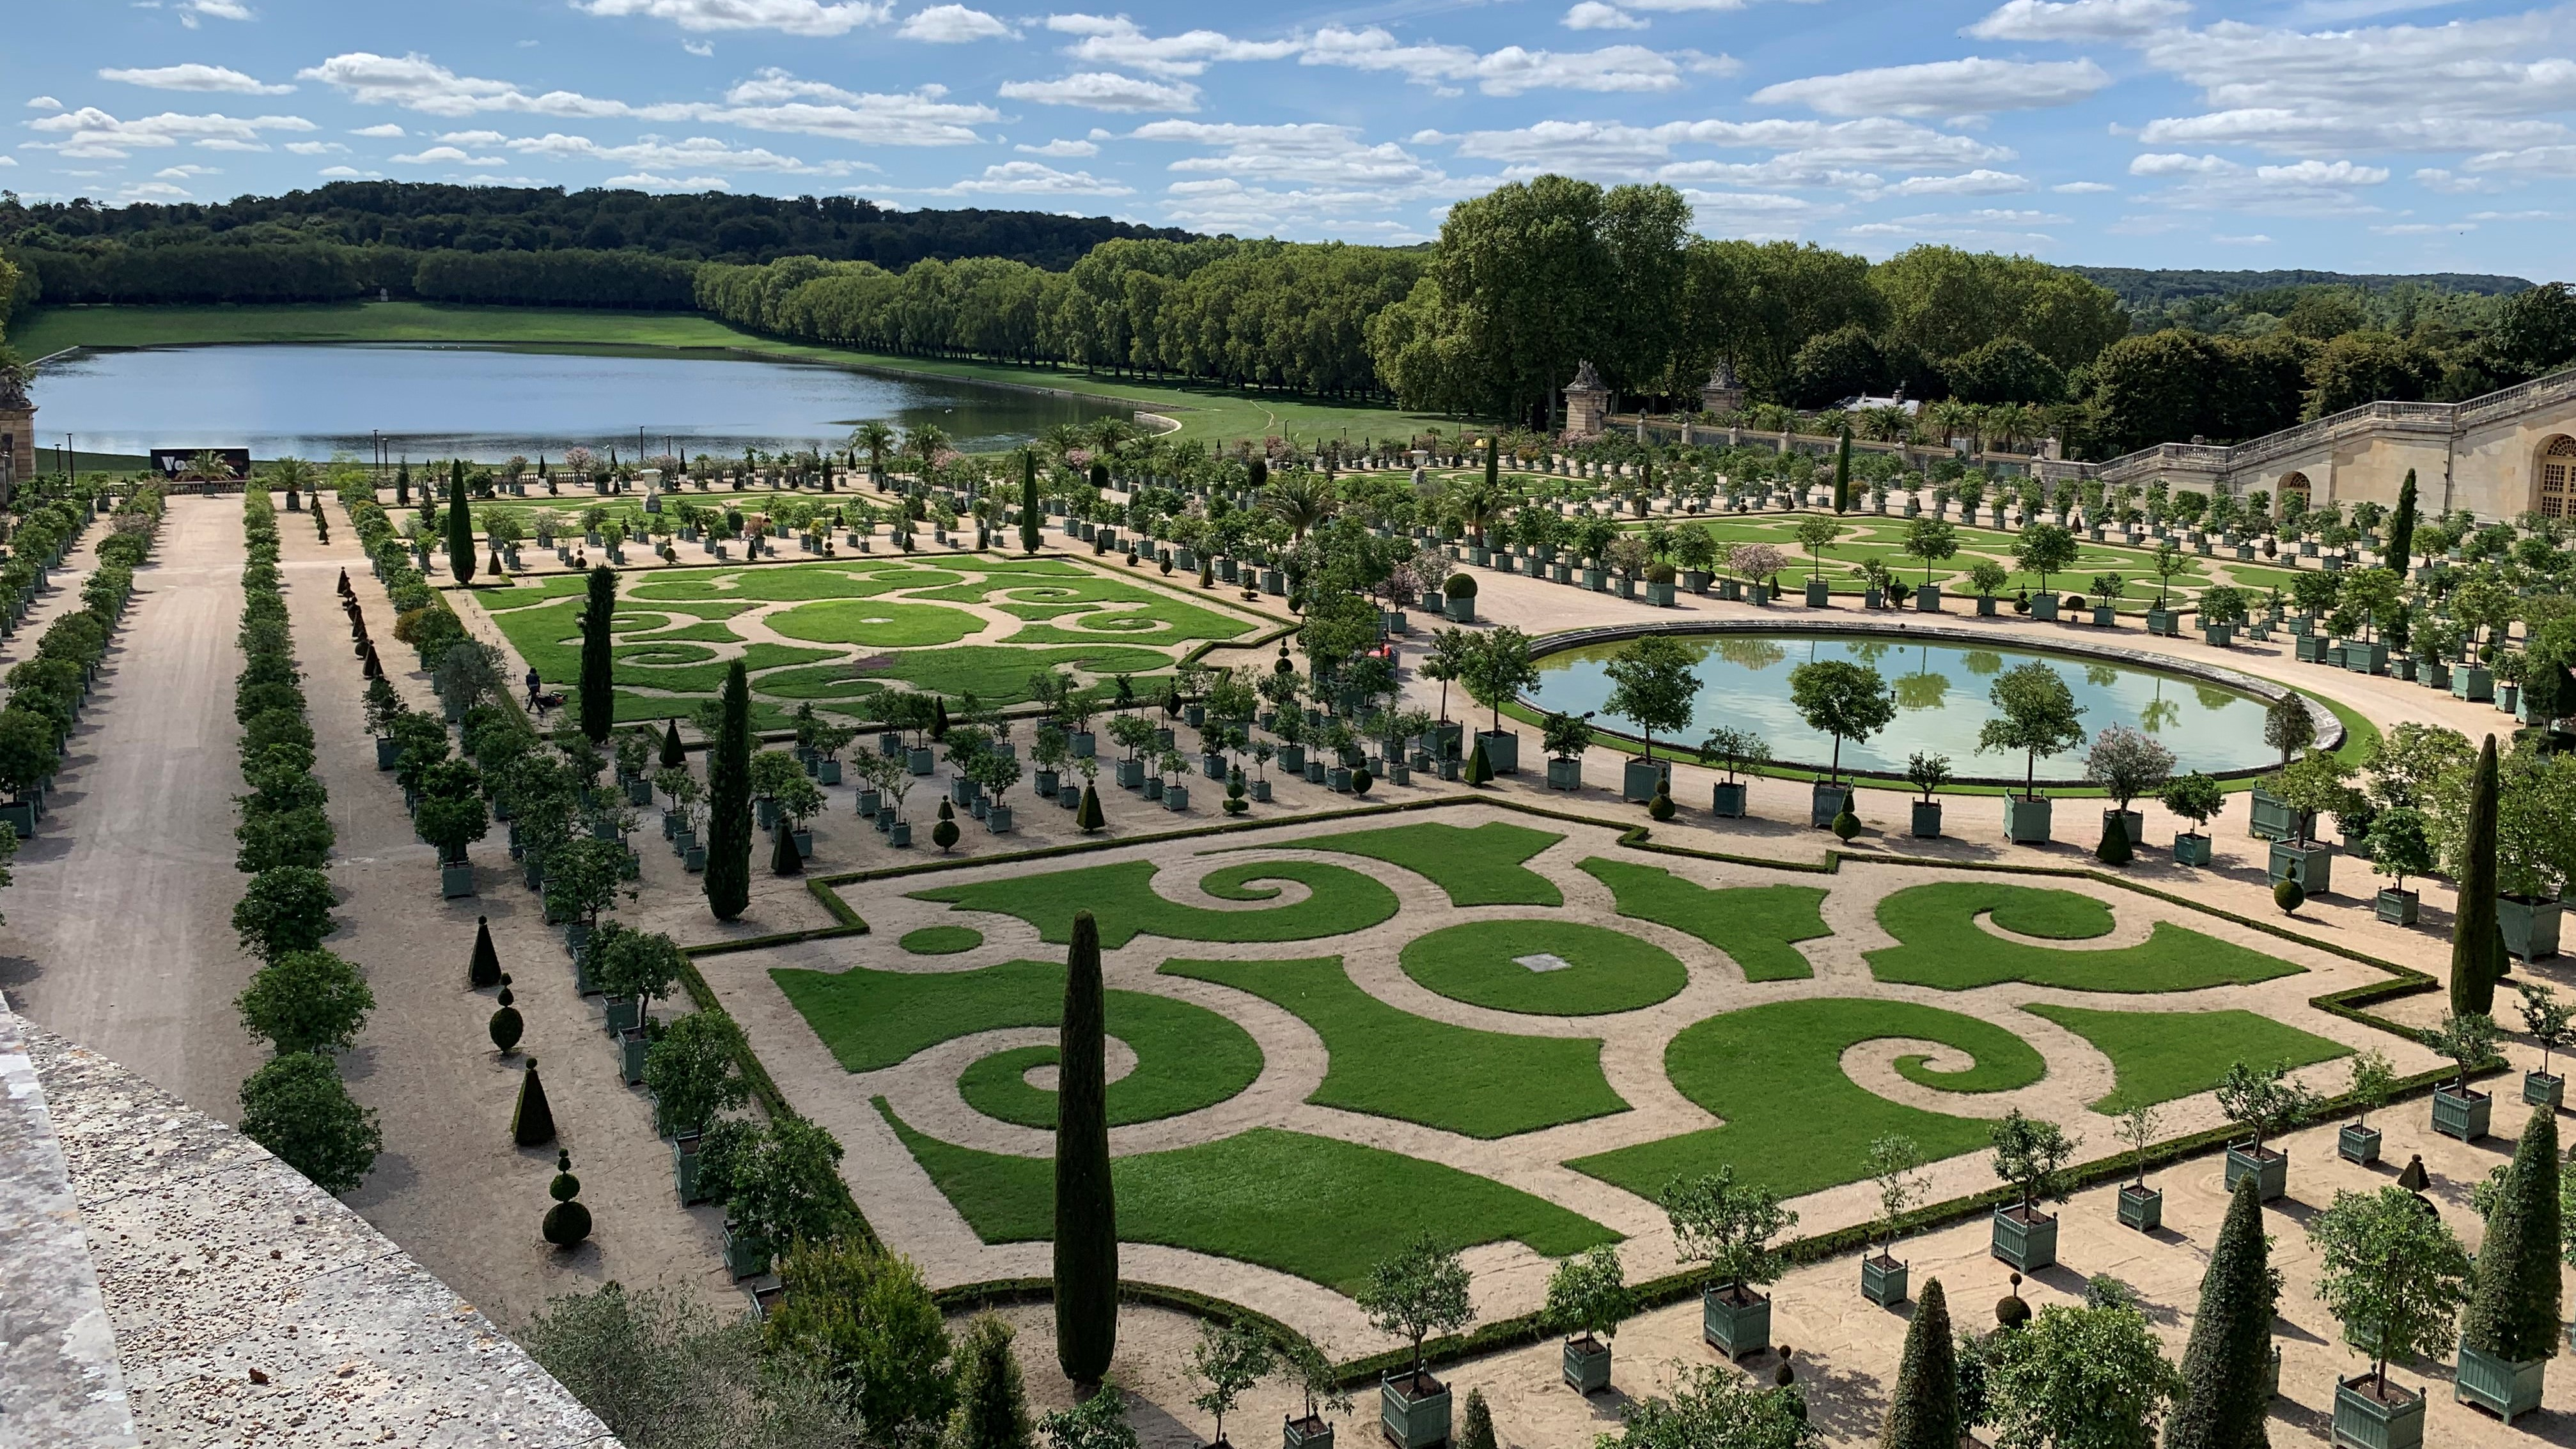 Versailles Garden - Senior Trip to Paris